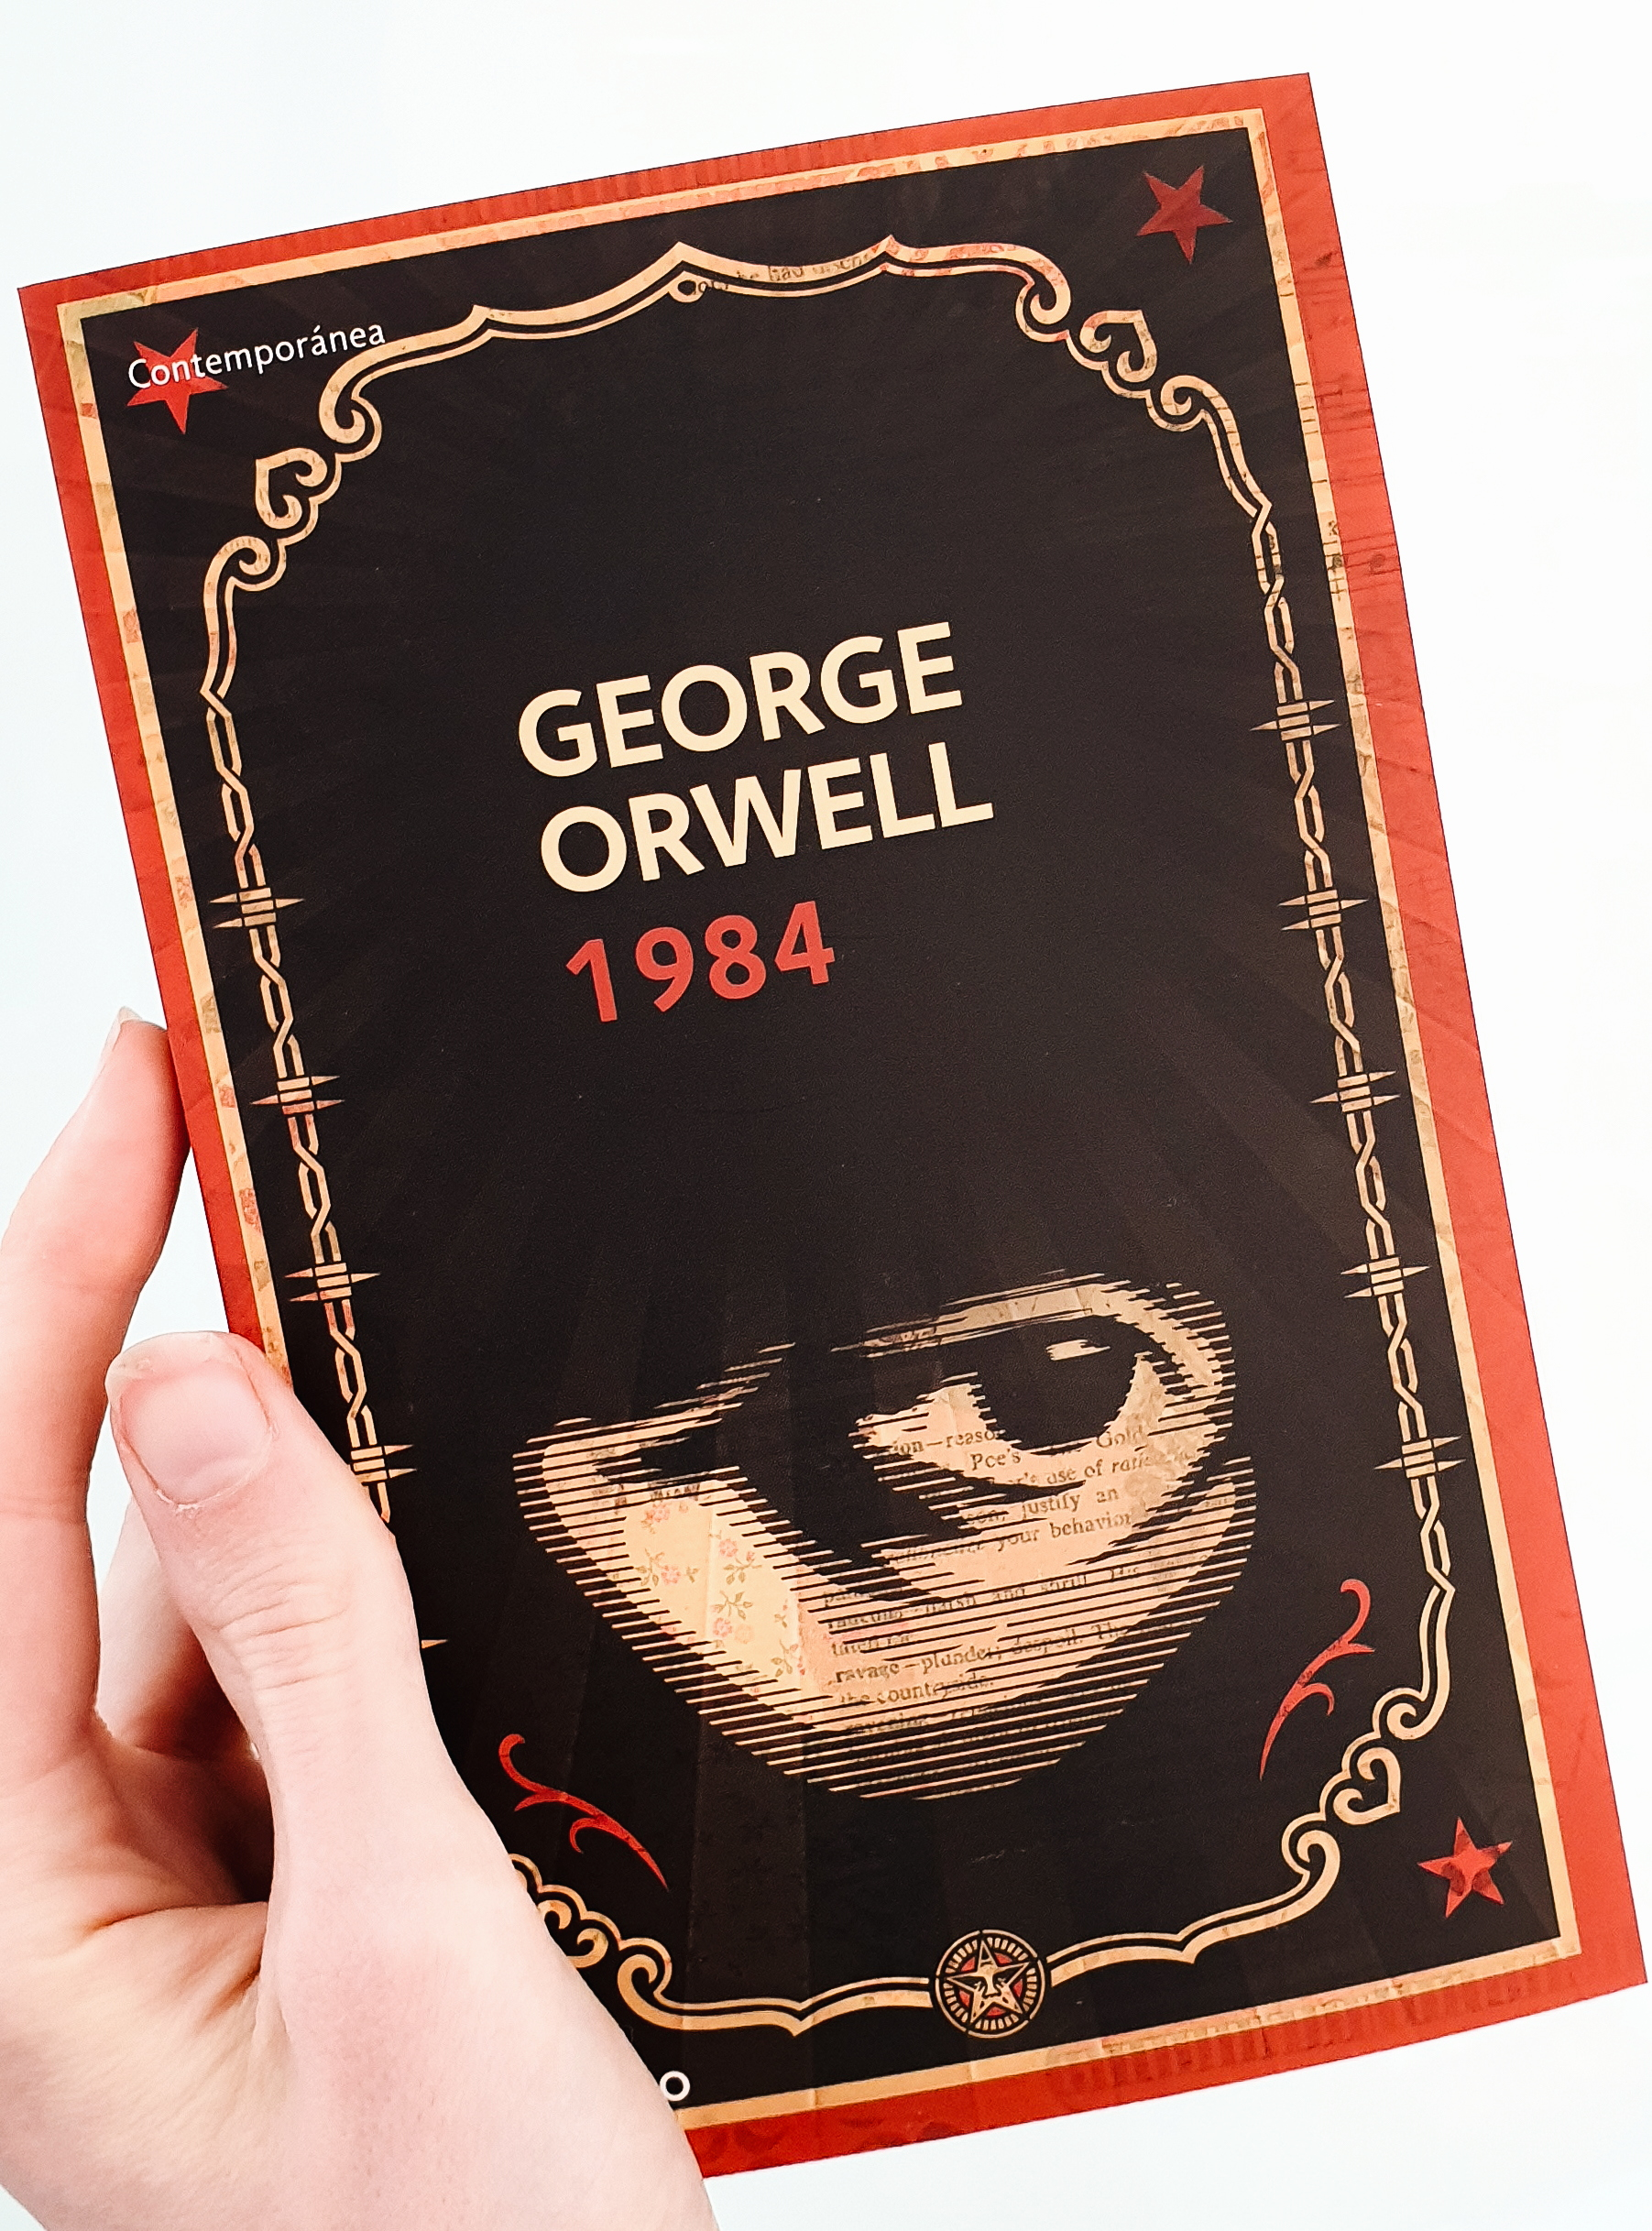 1984 by George Orwell new edition